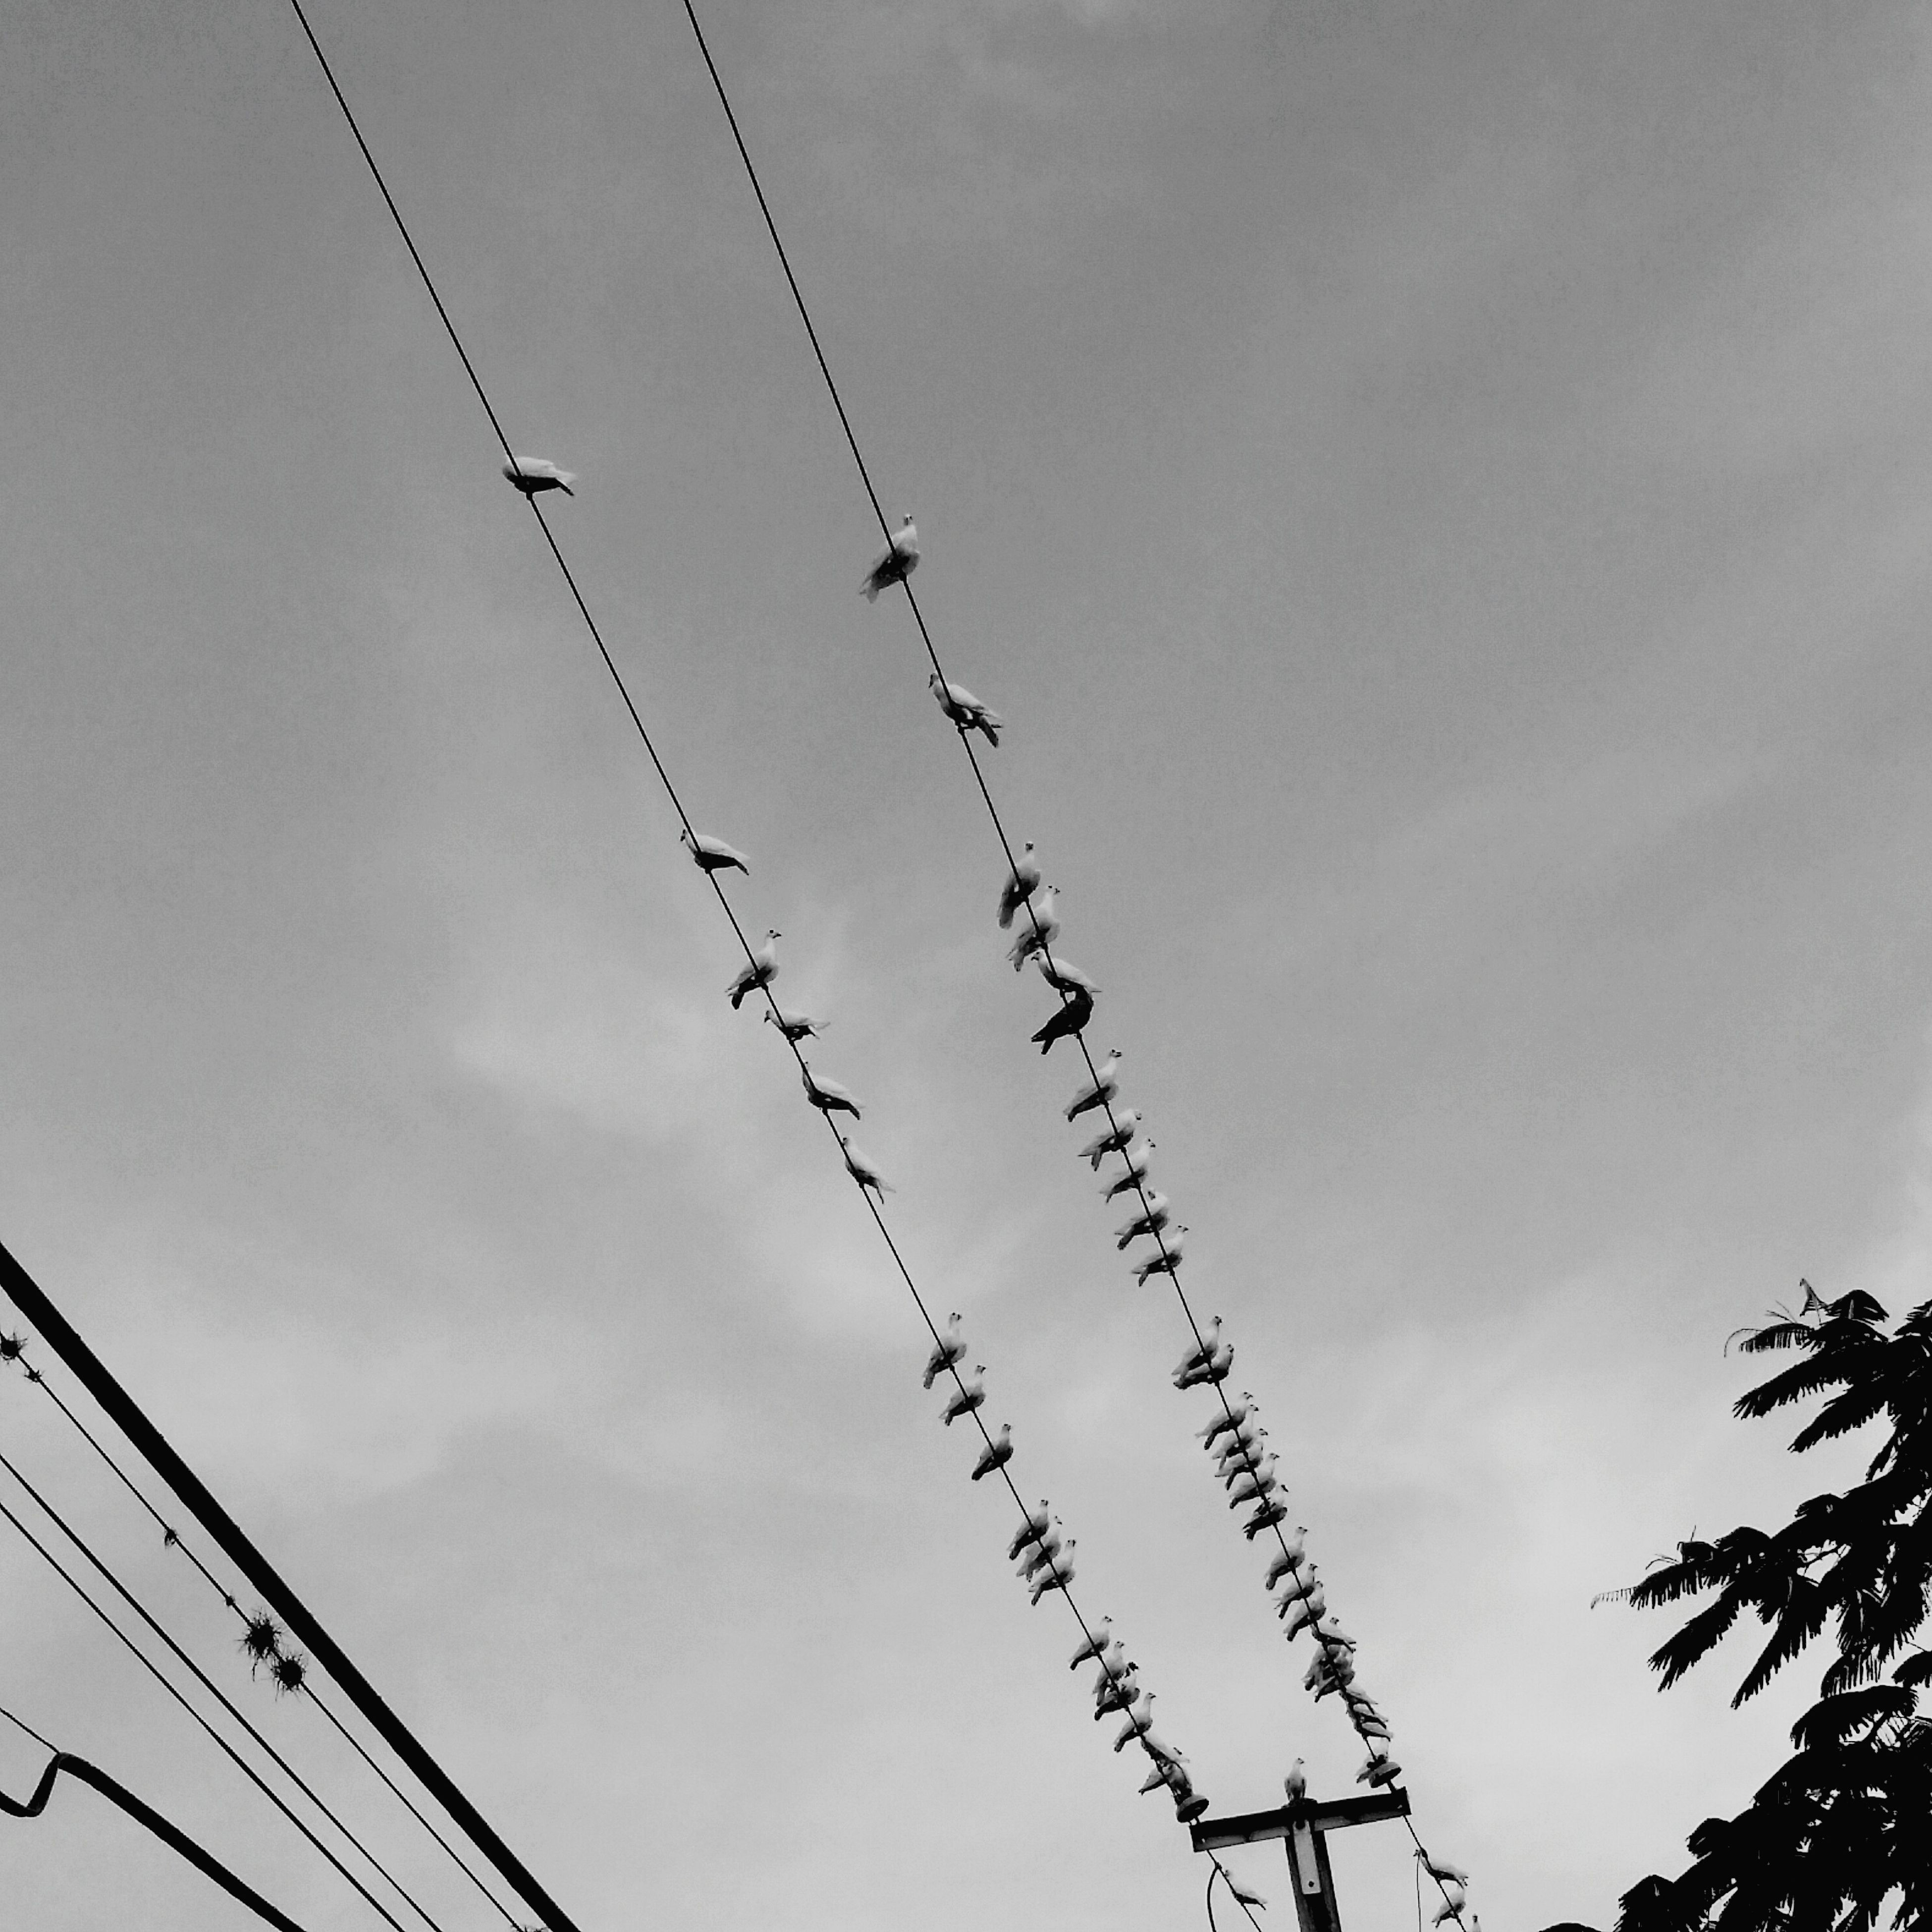 low angle view, bird, animal themes, perching, animals in the wild, wildlife, flock of birds, togetherness, cable, day, sky, perched, directly below, in a row, nature, power line, cloud - sky, outdoors, flying, high section, tranquility, no people